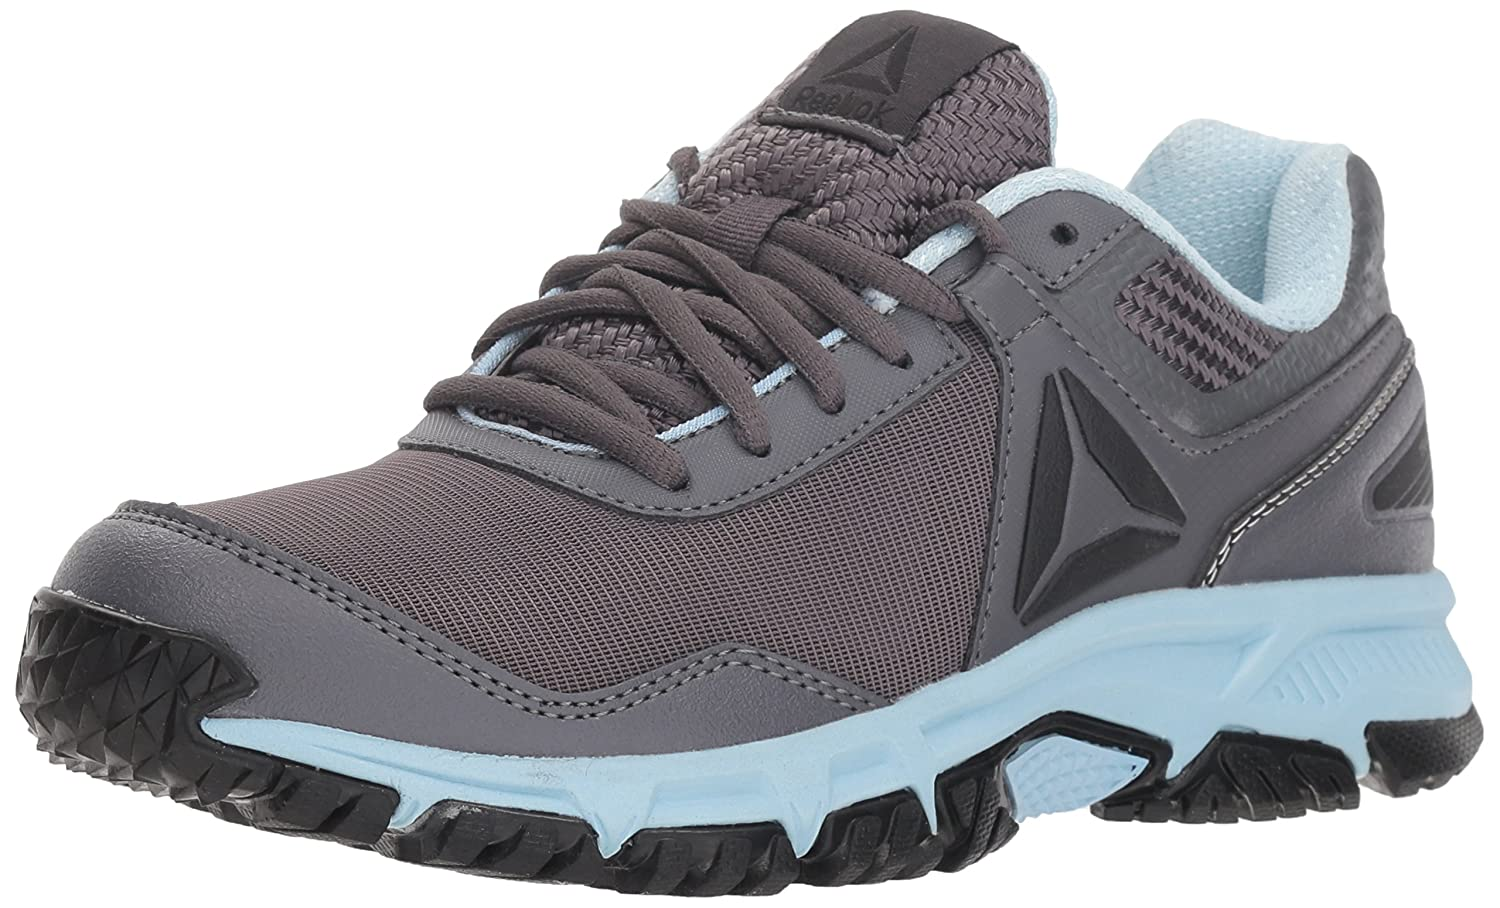 Reebok Women's Ridgerider Trail 3.0 Sneaker B077ZK4J58 9 M US|Ash Grey/Dreamy Blue/Blac